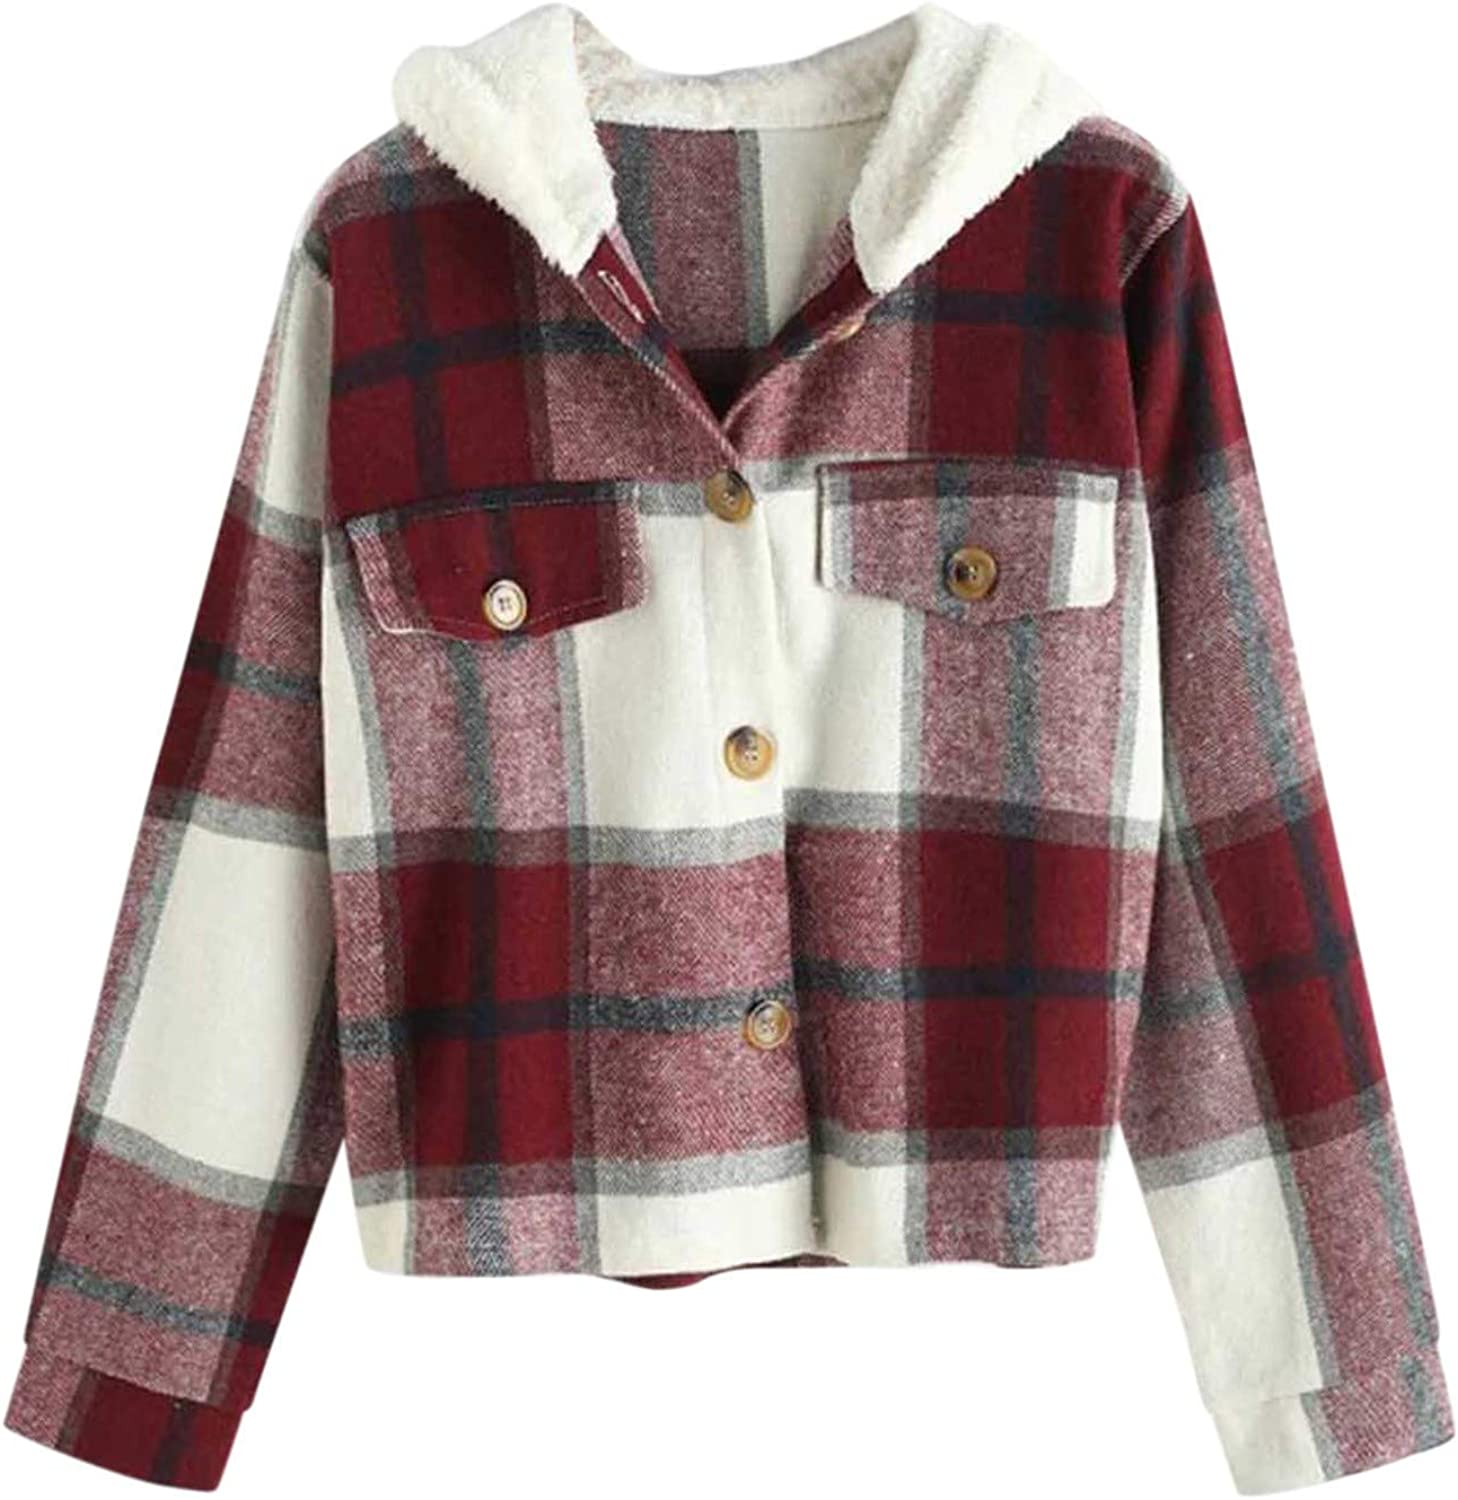 Forwelly Women's Girl Fall Winter Cropped Jacket Fashion Plaid Hoodies Cute Hooded Coat